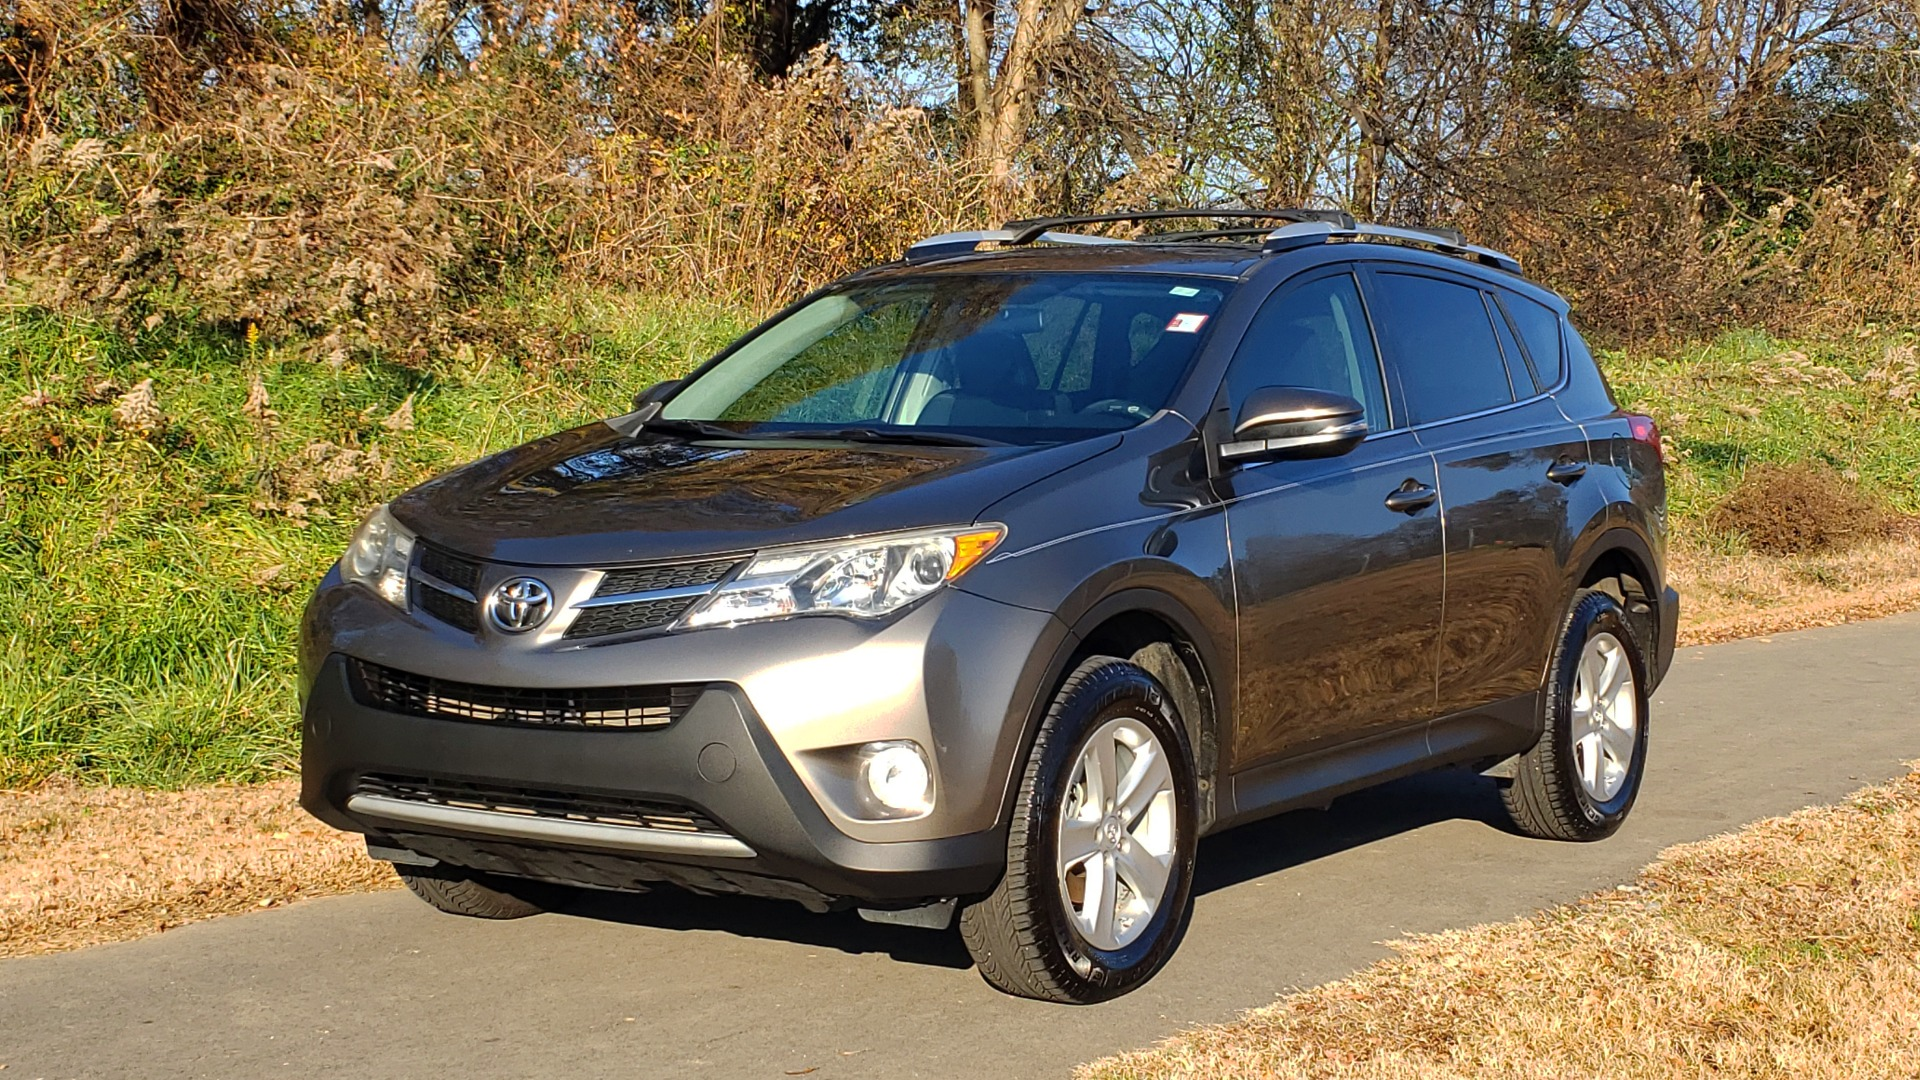 Used 2014 Toyota RAV4 XLE / FWD / 2.5L 4-CYL / 6-SPD AUTO / 17IN ALLOY / REARVIEW for sale $13,695 at Formula Imports in Charlotte NC 28227 1